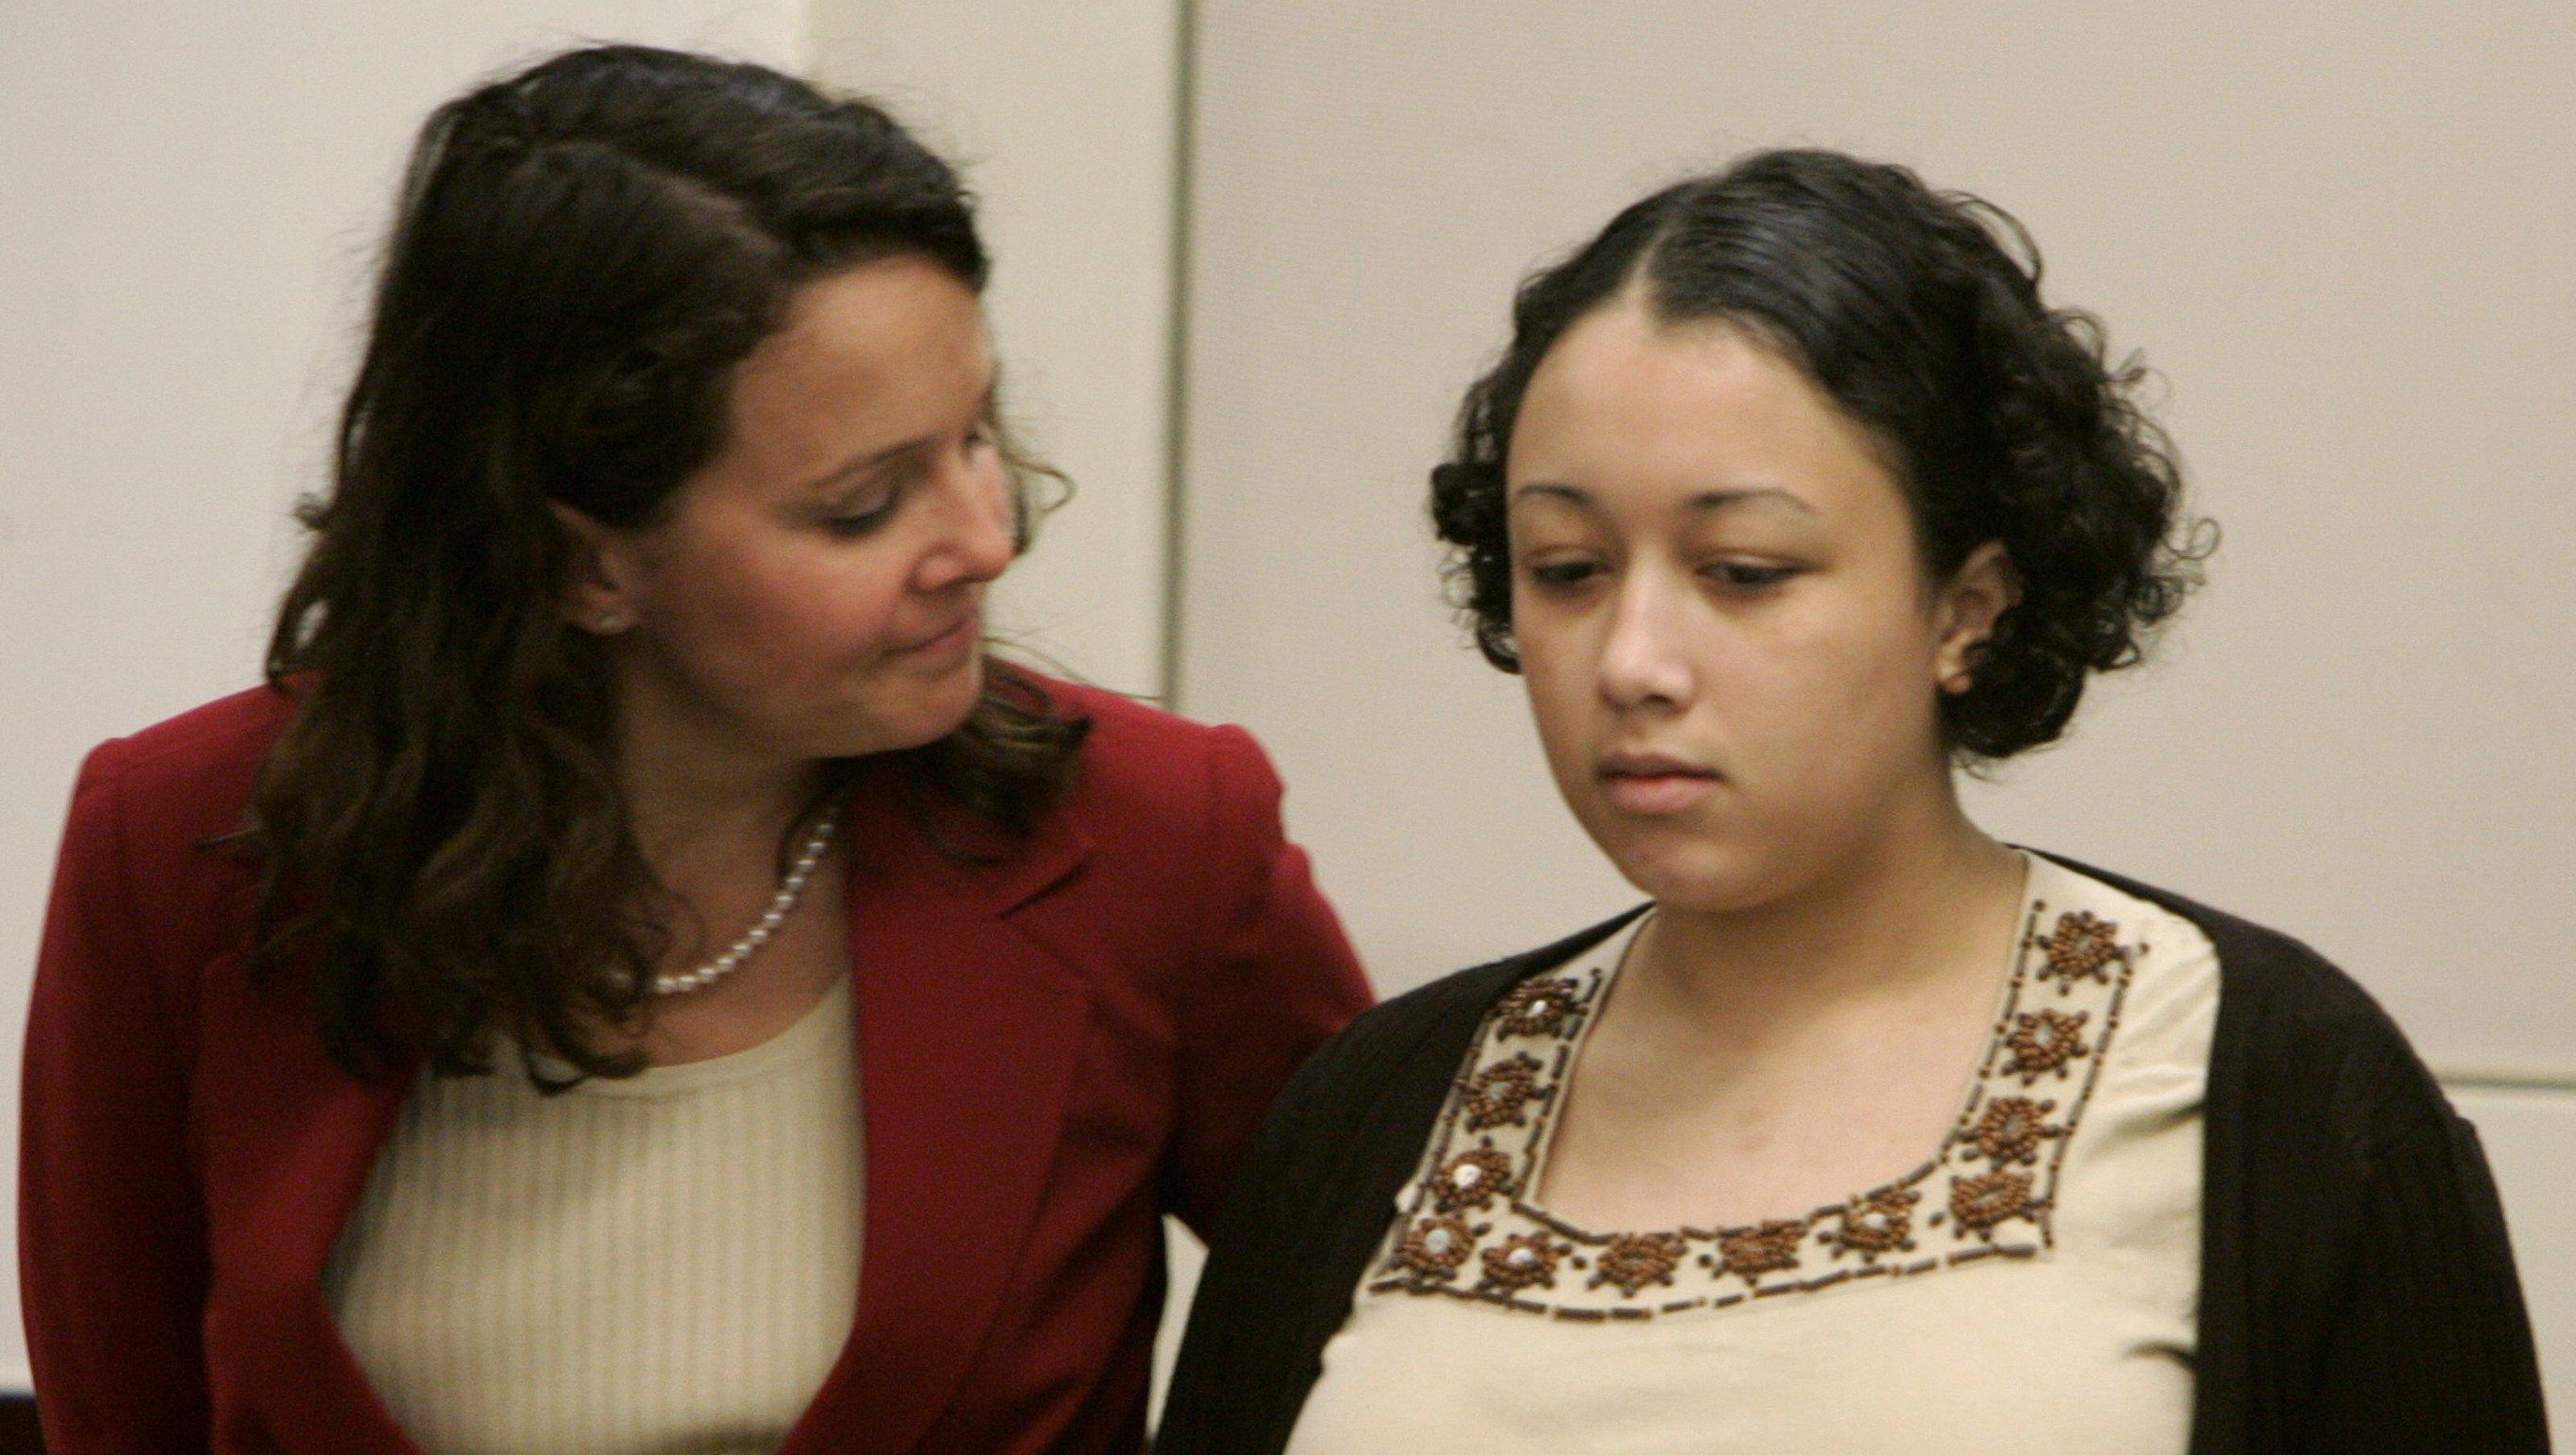 Case Of Cyntoia Brown >> Cyntoia Brown case: lawyers file appeal seeking to overturn life sentence